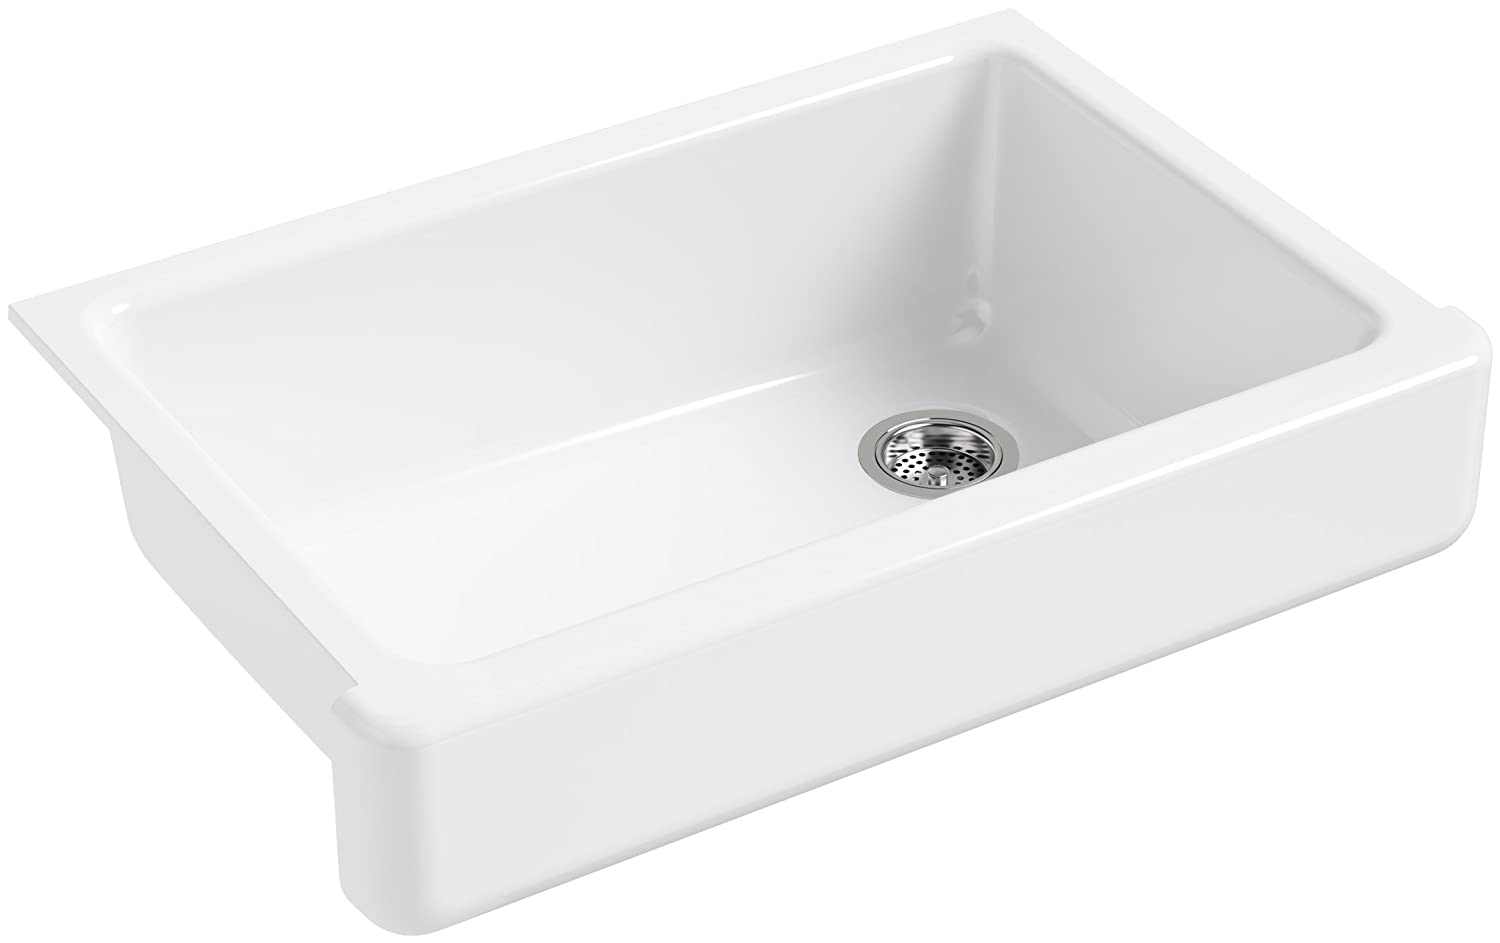 33 Farmhouse Sink White : ... Under-Mount Single-Bowl White Farmhouse Sink with Tall Apron DETAILS